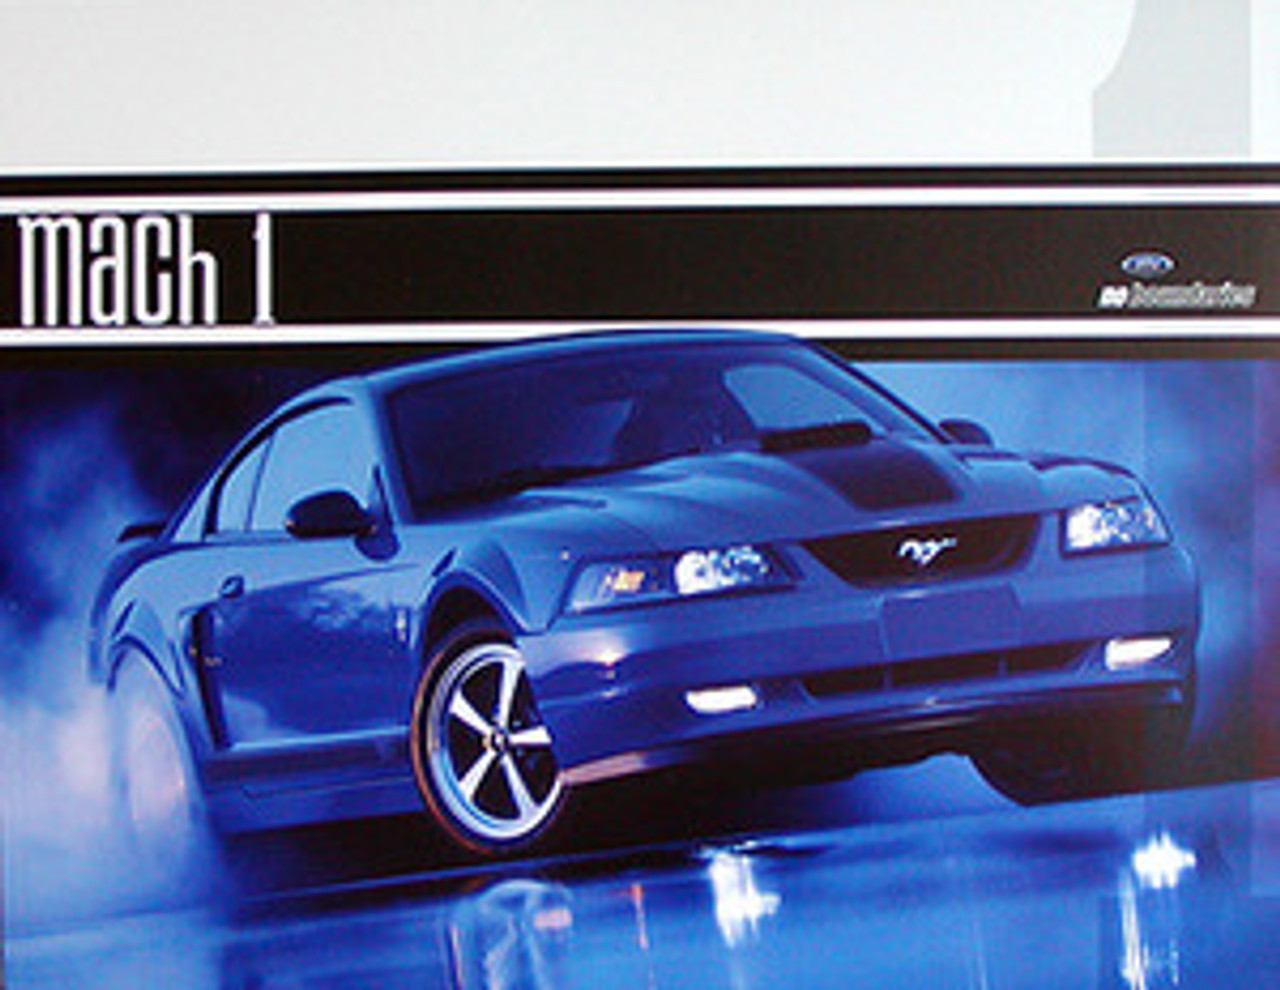 2003 Mustang Mach1 Tech Card - Set of 2